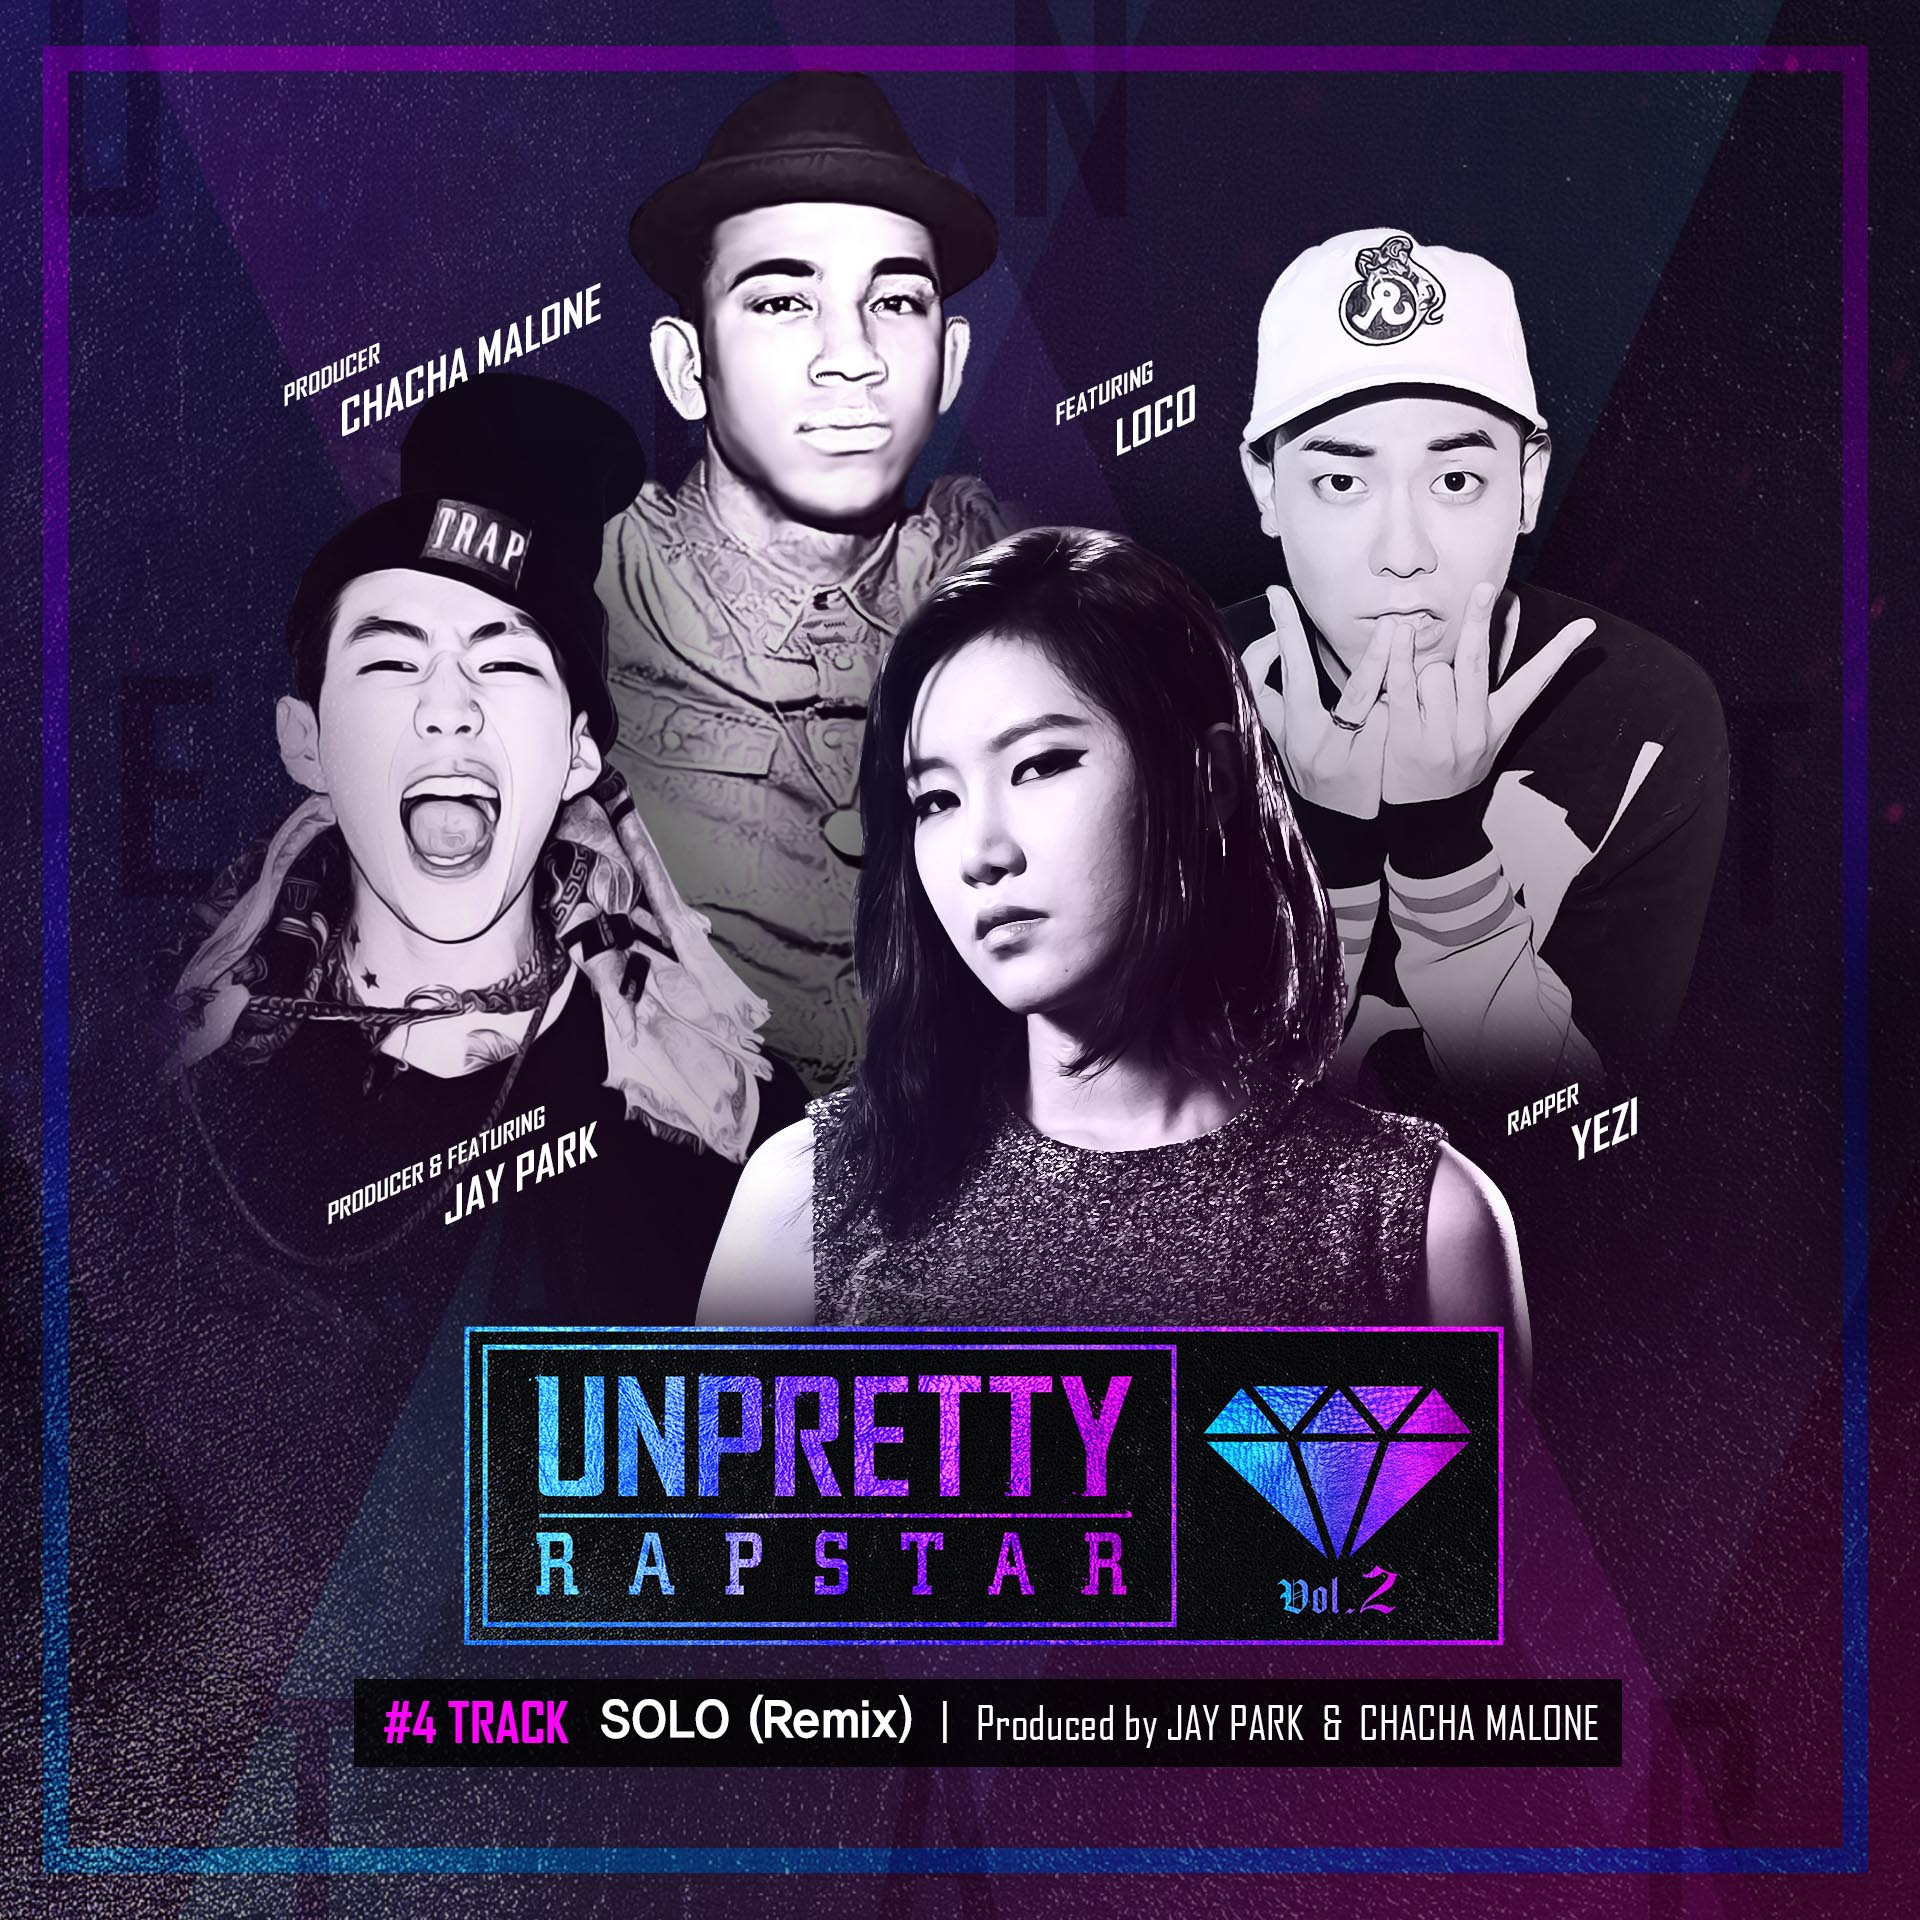 Yezi (Fiestar) Feat. Jay Park & Loco – Solo – Unpretty Rapstar 2 Track 4 K2Ost free mp3 download korean song kpop kdrama ost lyric 320 kbps